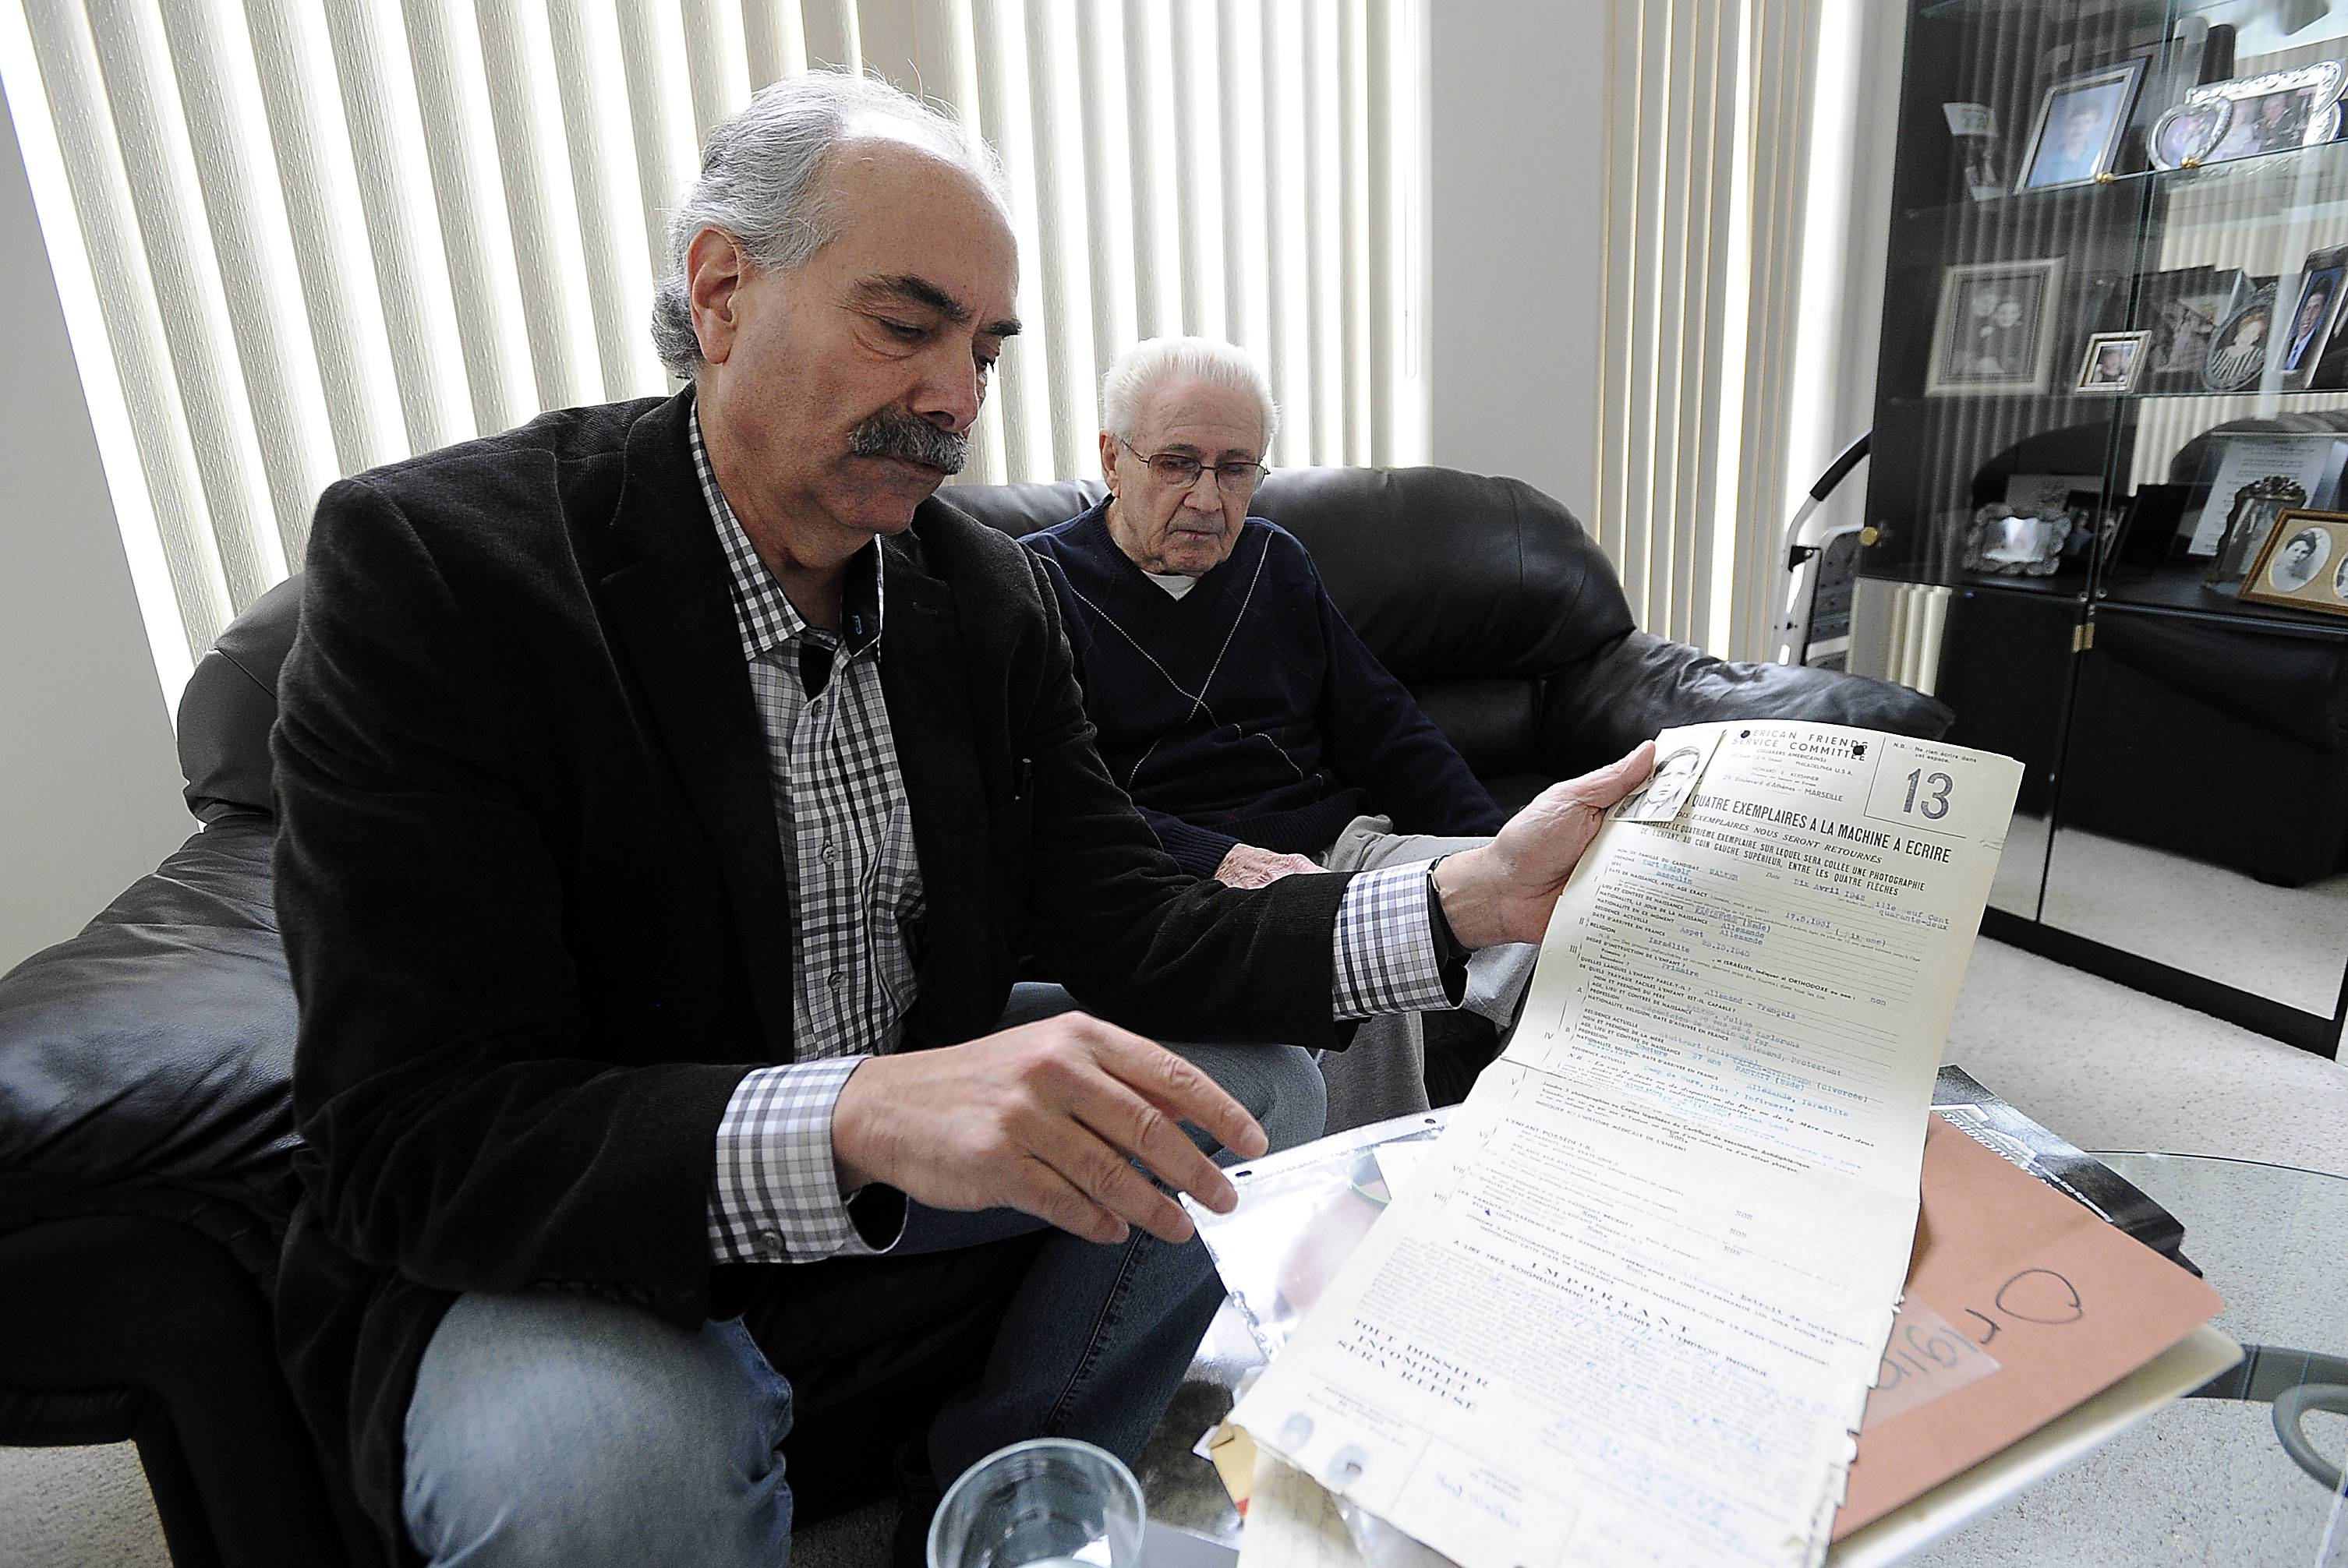 Author Steve Richards holds the paperwork and picture of Kurt Wagner at age 10 years old when his mother signed these papers to send him out of camp and in turn saved his life.